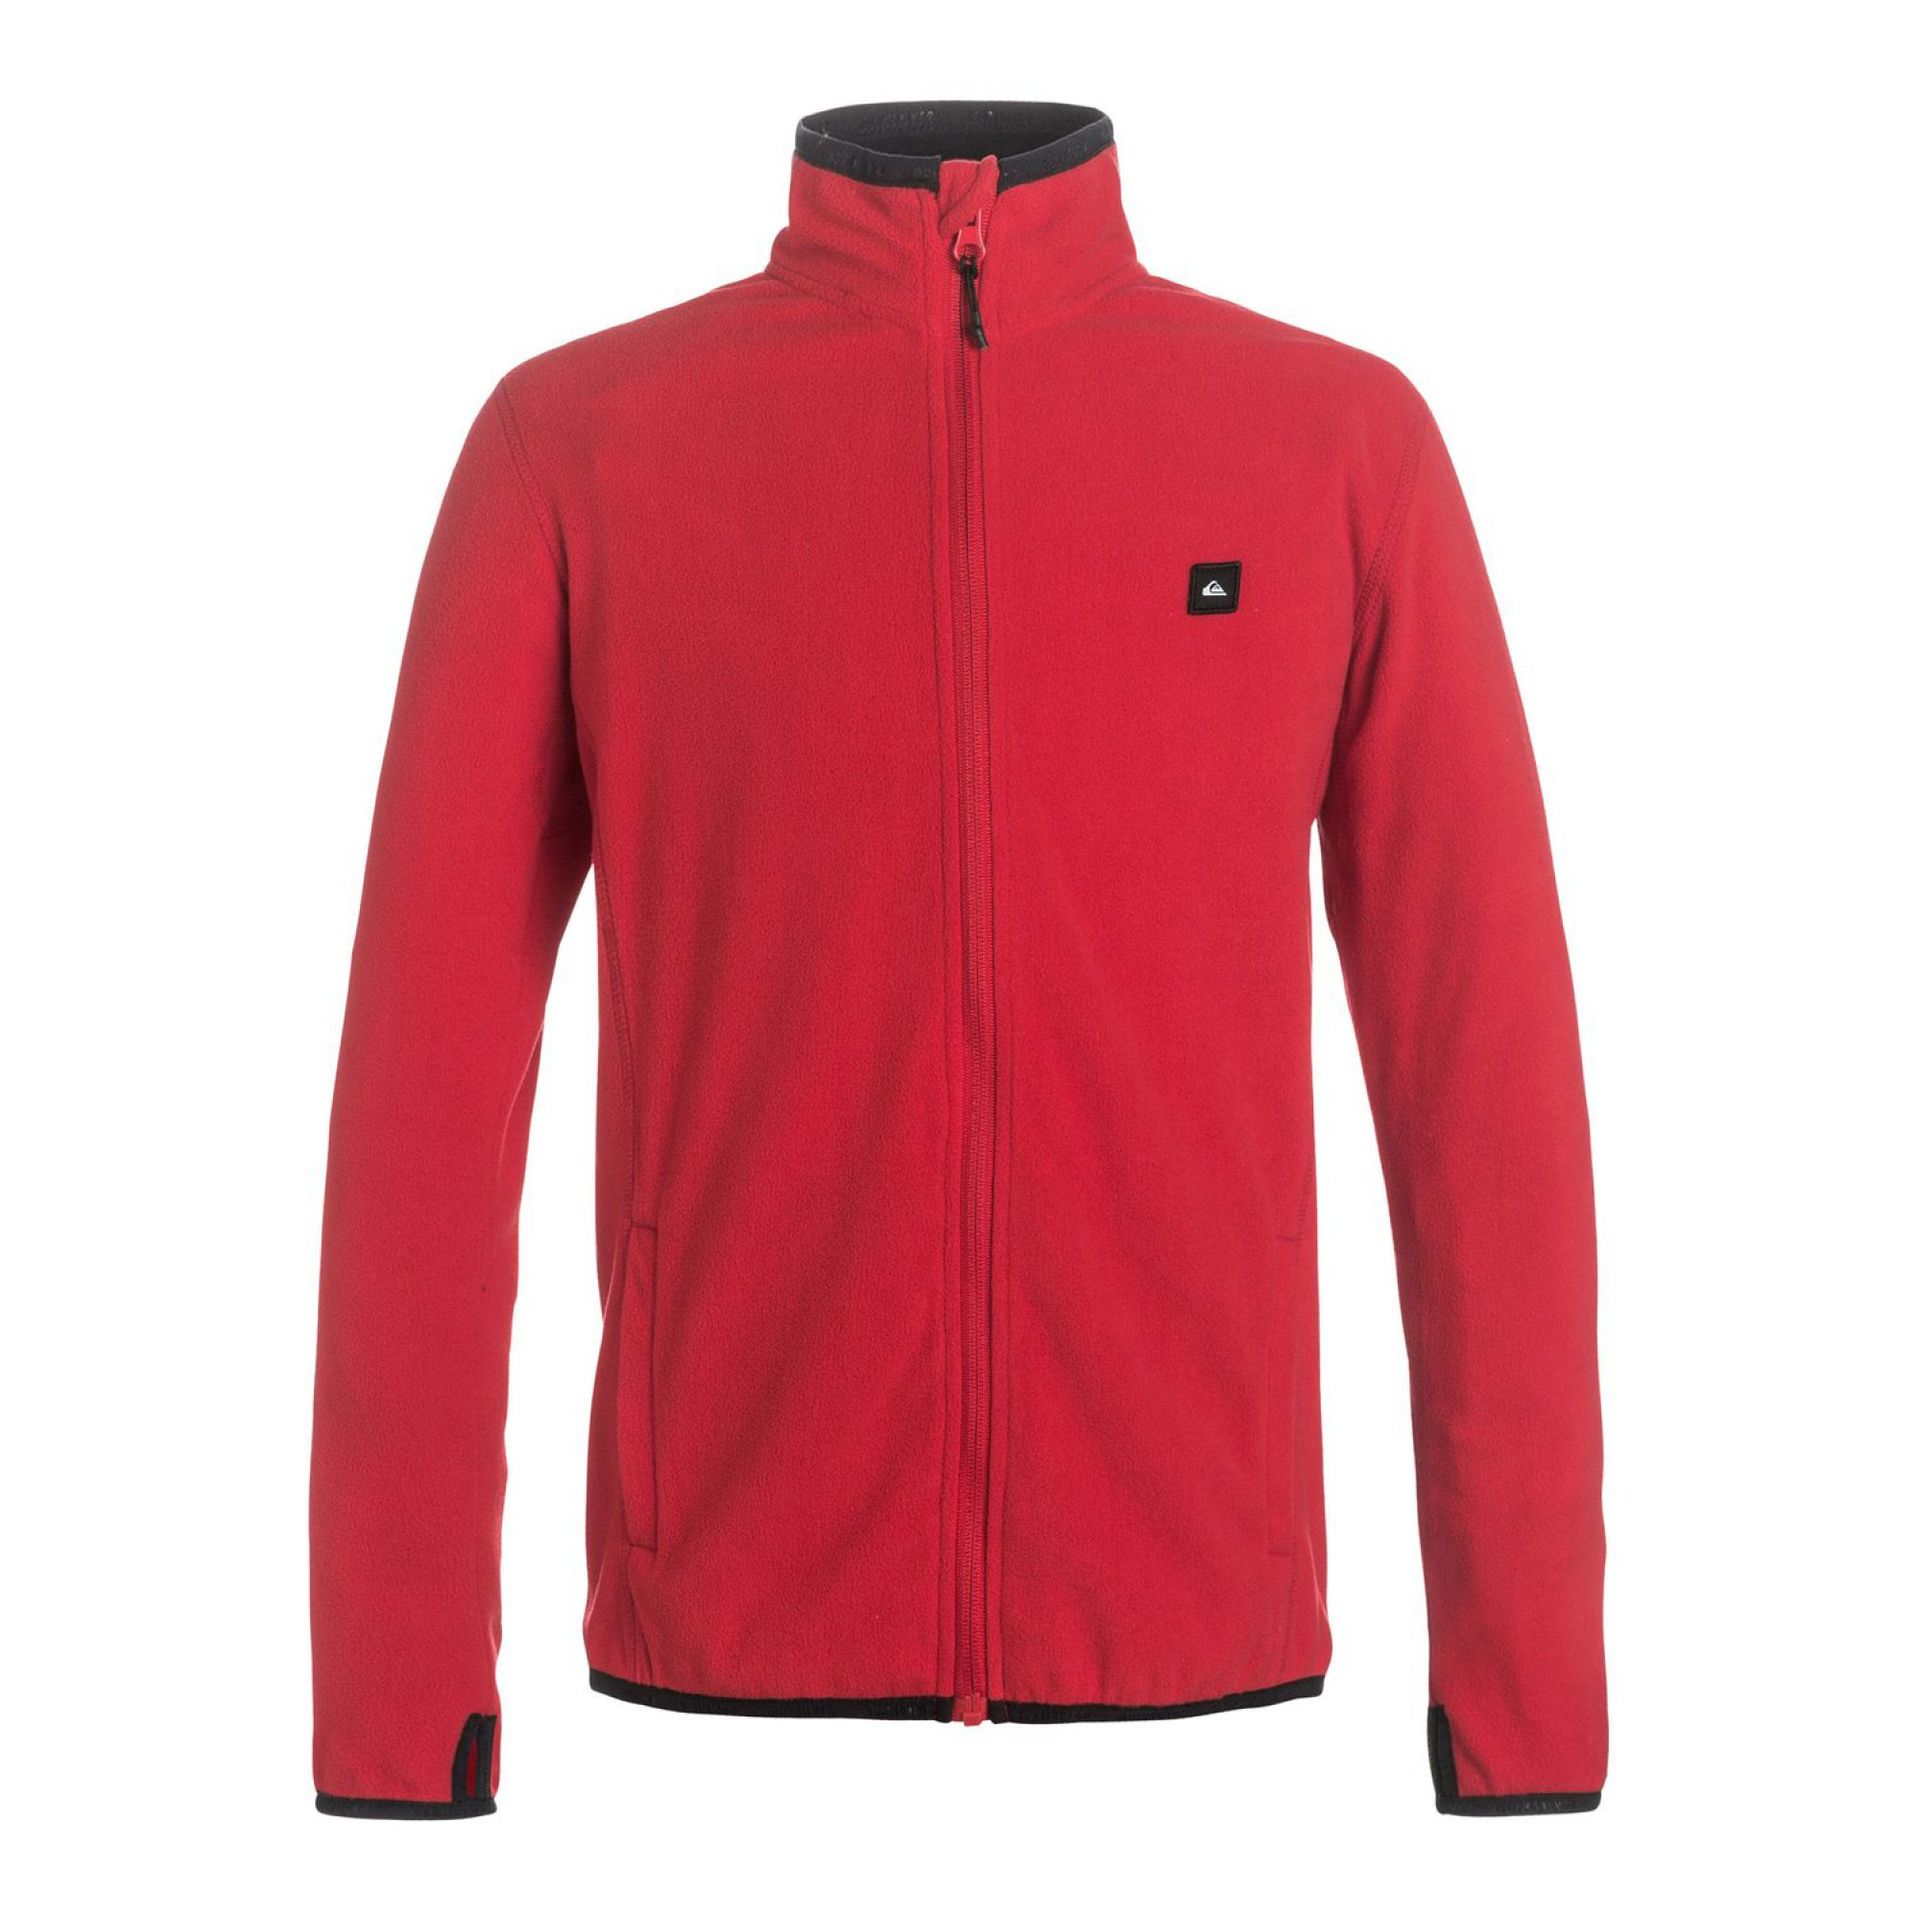 POLAR QUIKSILVER AKER YOUGHT RACING RED (rqr0)